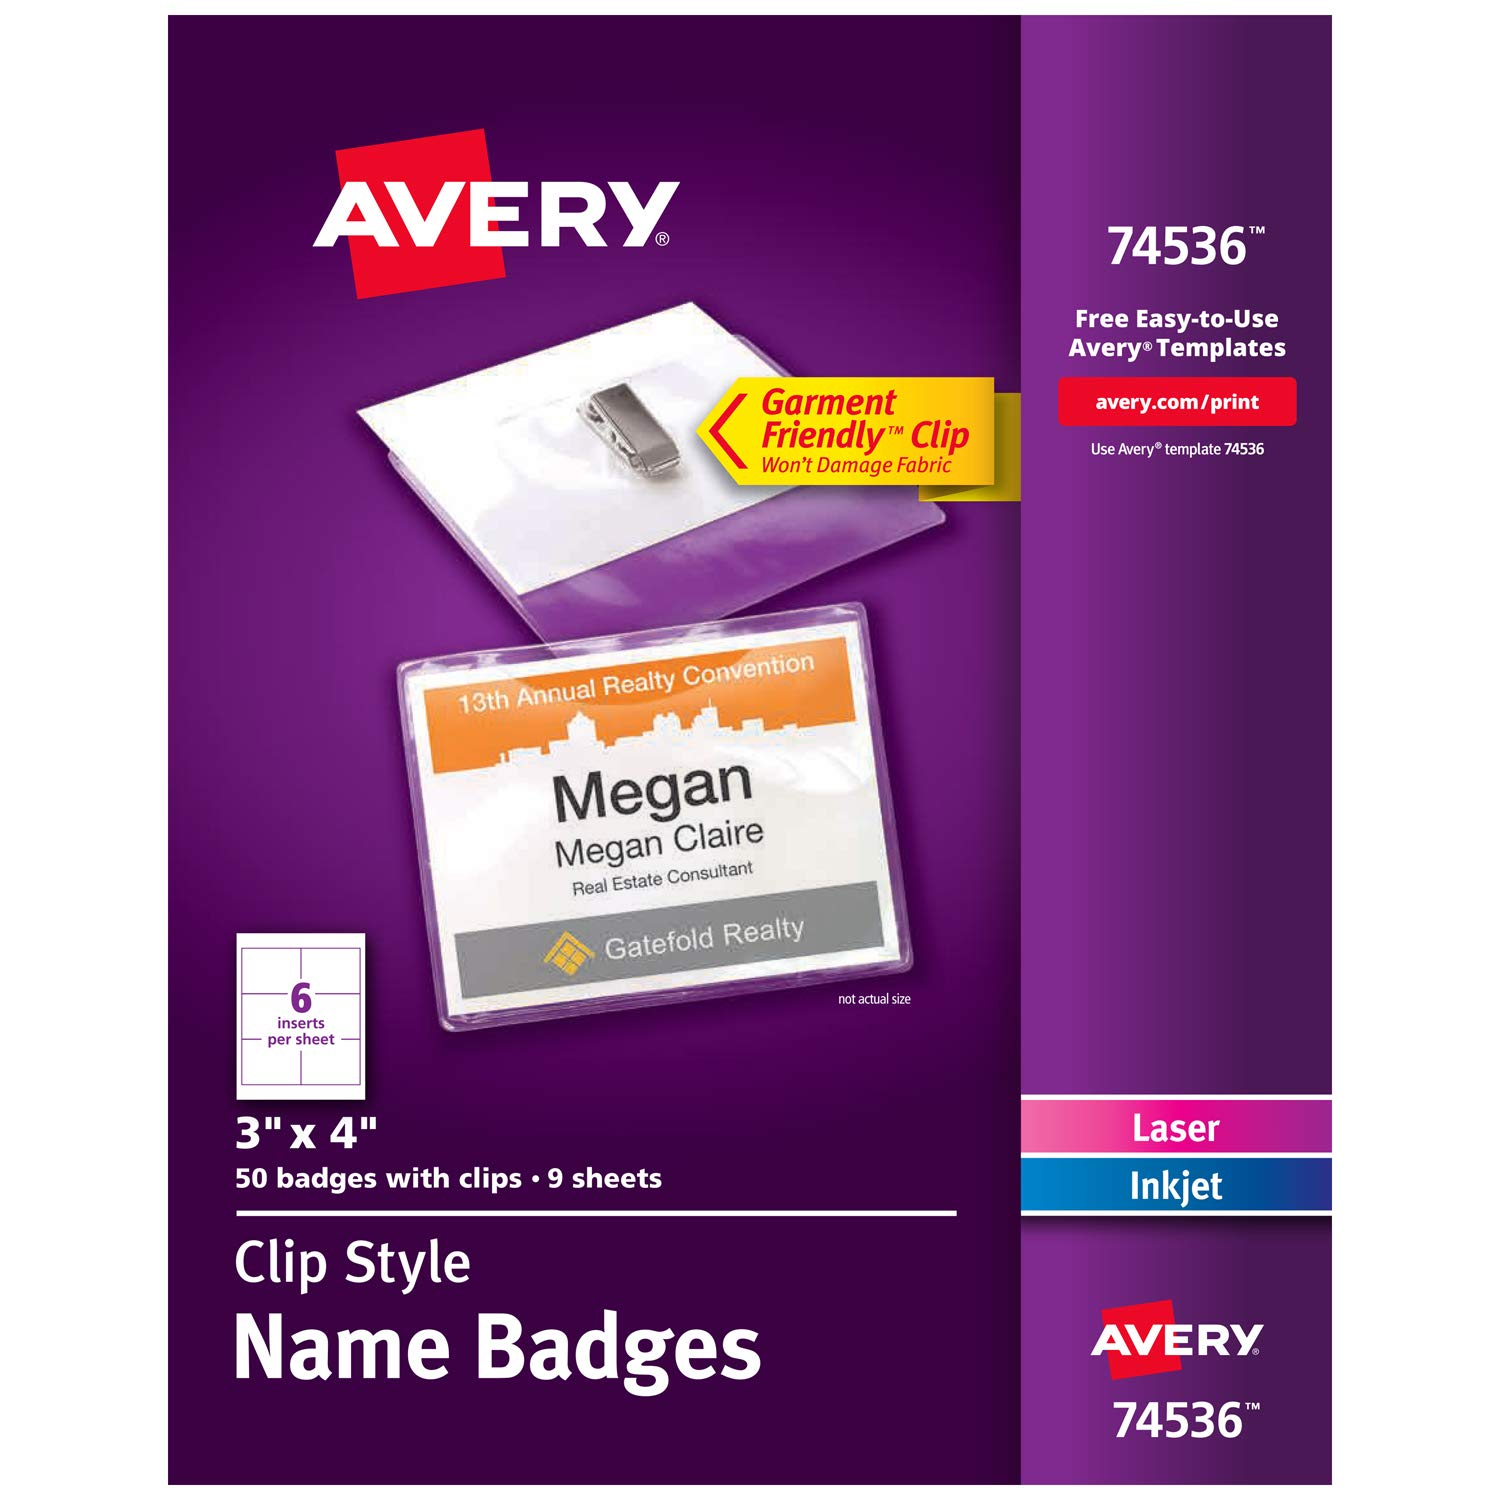 Avery Clip Name Badges, Print or Write, 3'' x 4'', 50 Inserts & Badge Holders with Clips (74536), White by AVERY